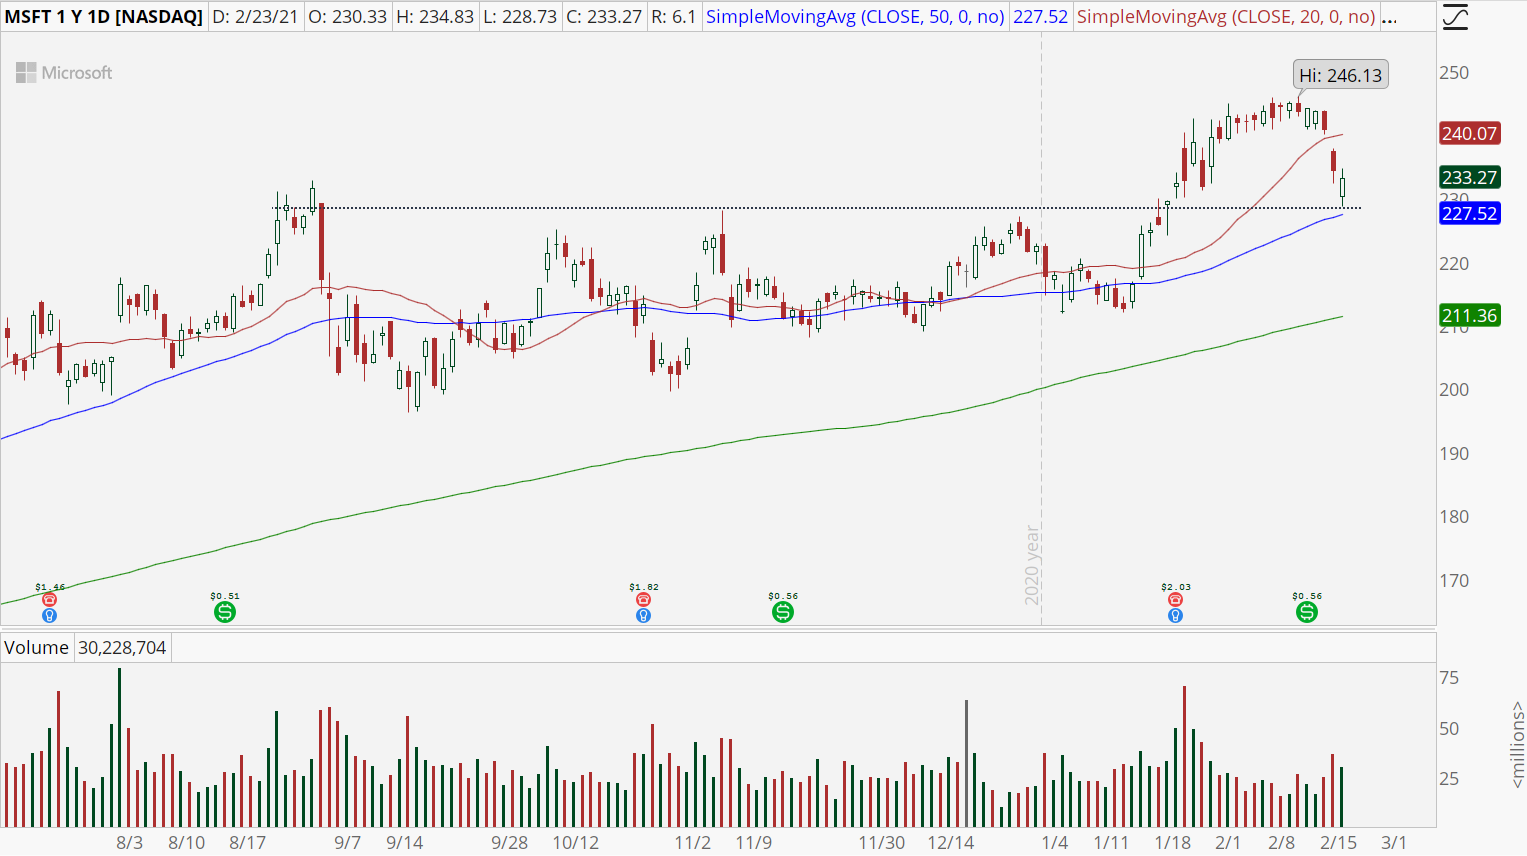 Microsoft (MSFT) stock with bull retracement pattern